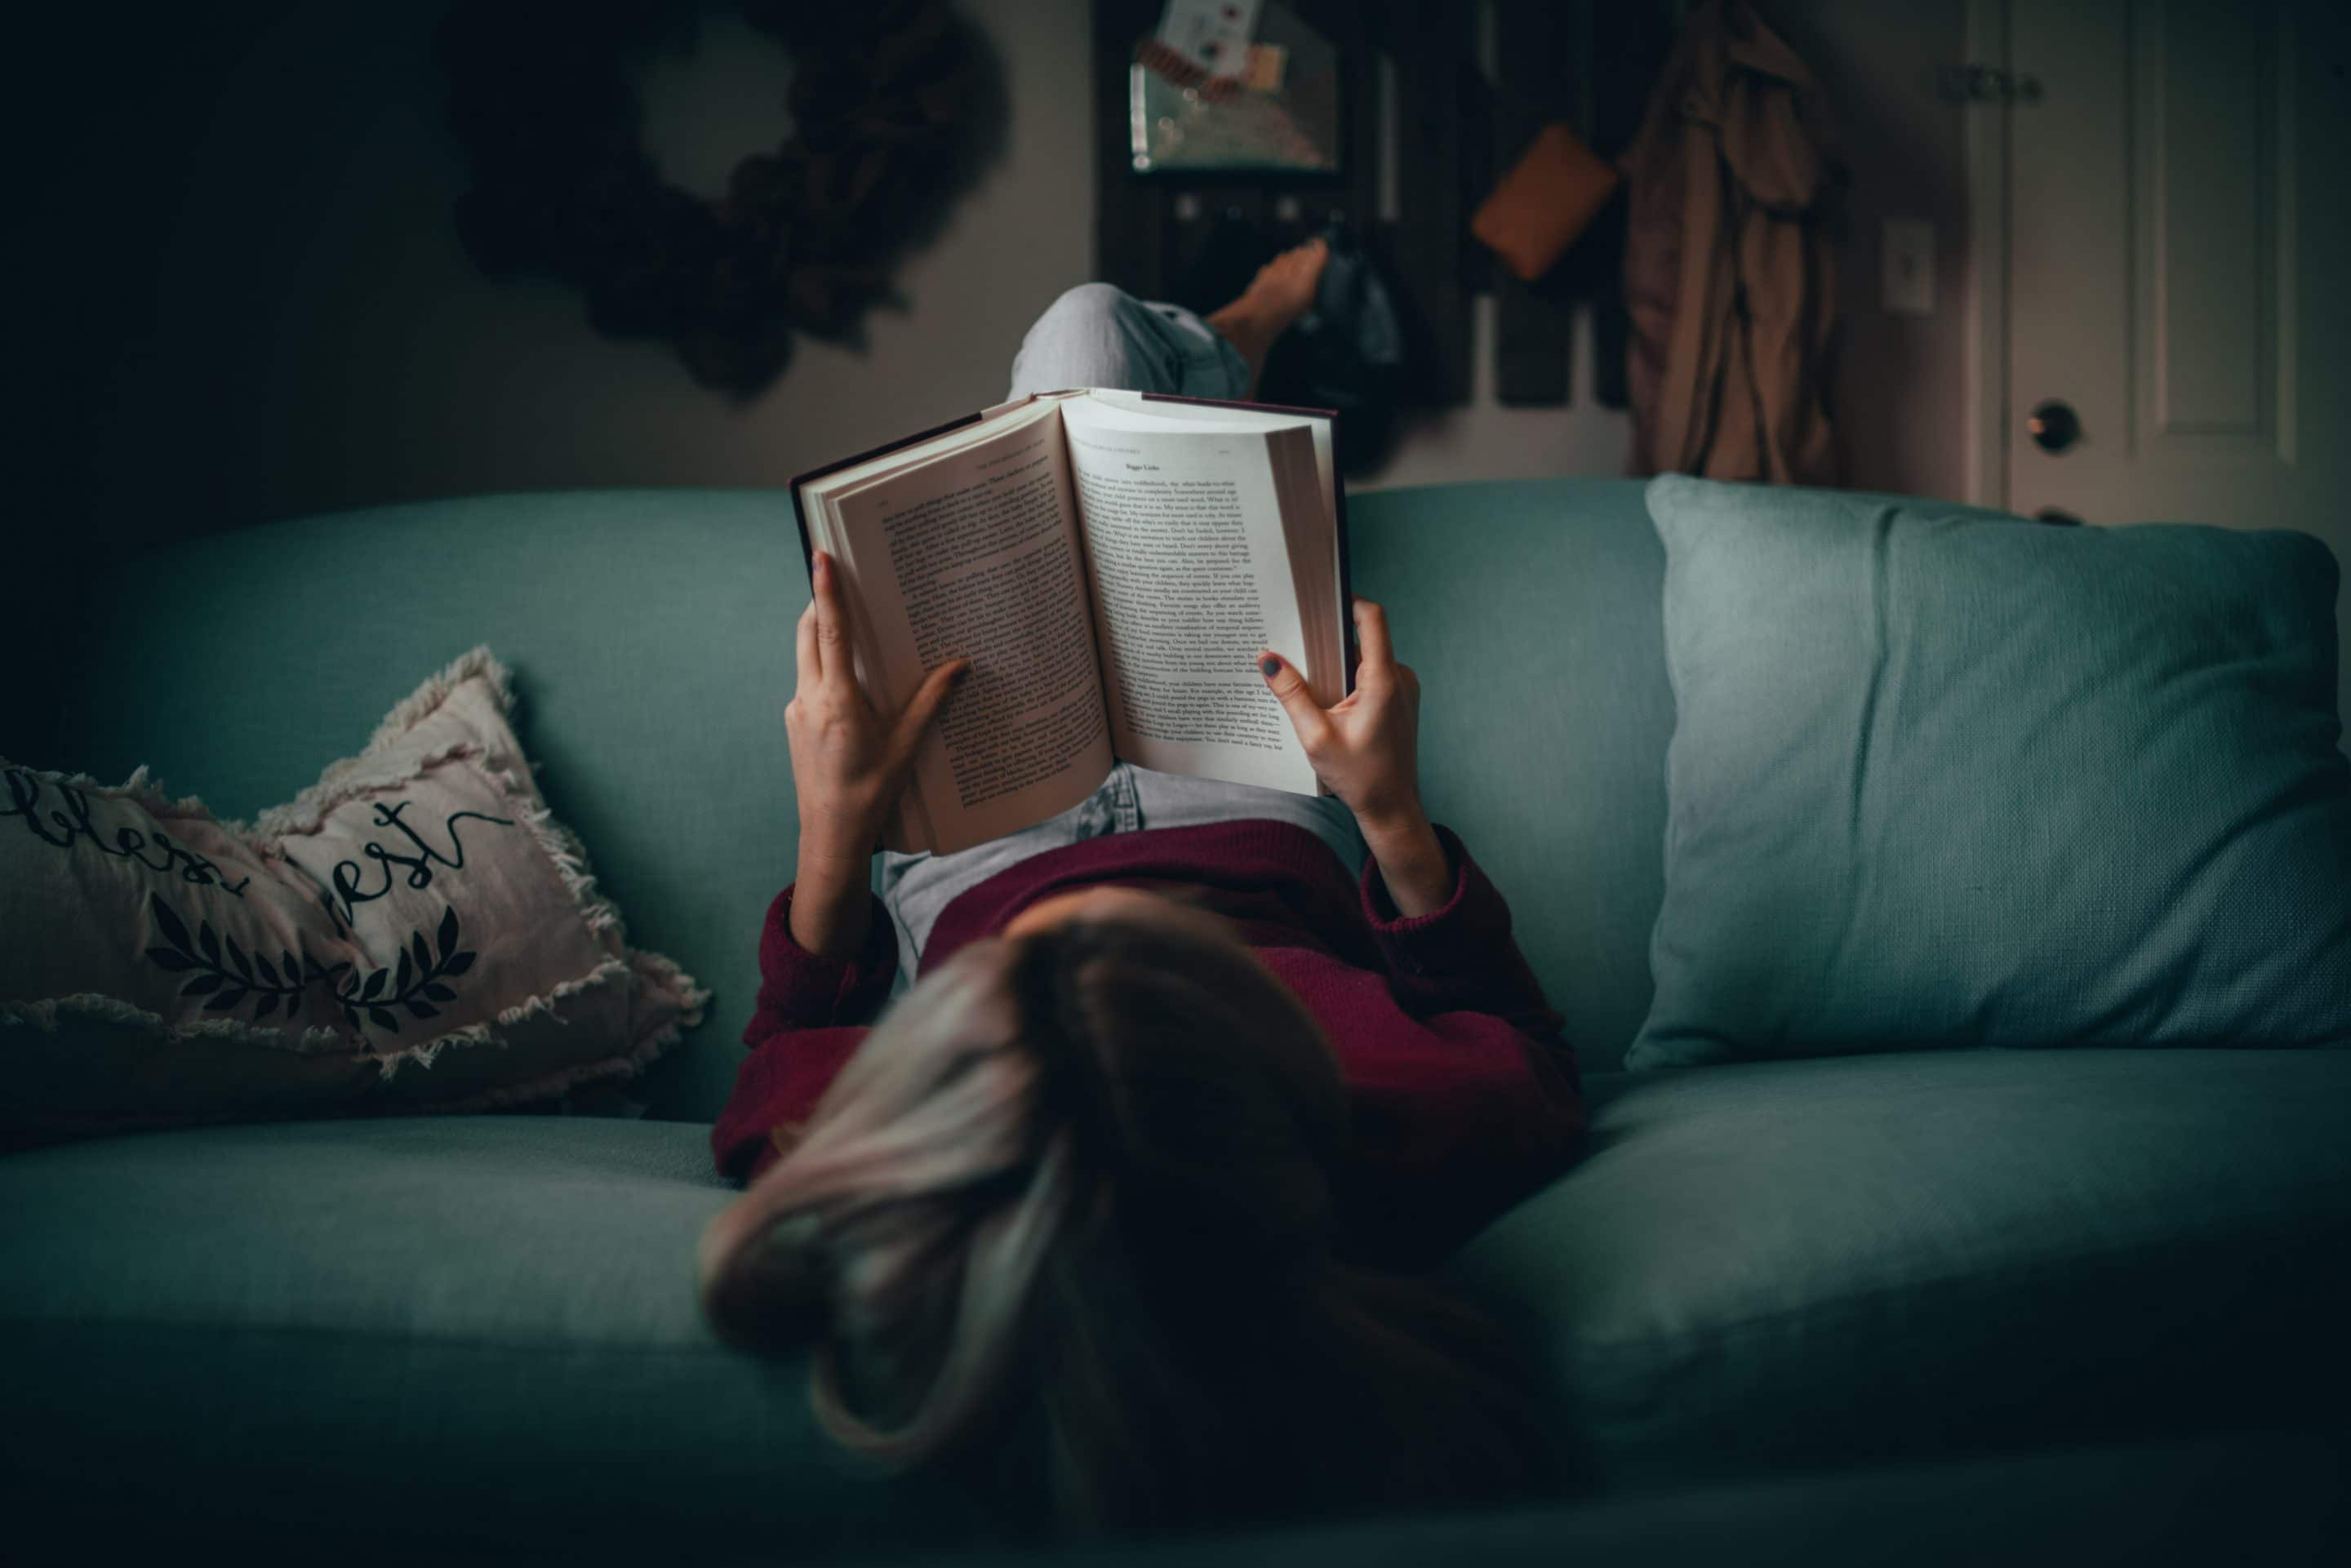 Effects of reading on the brain